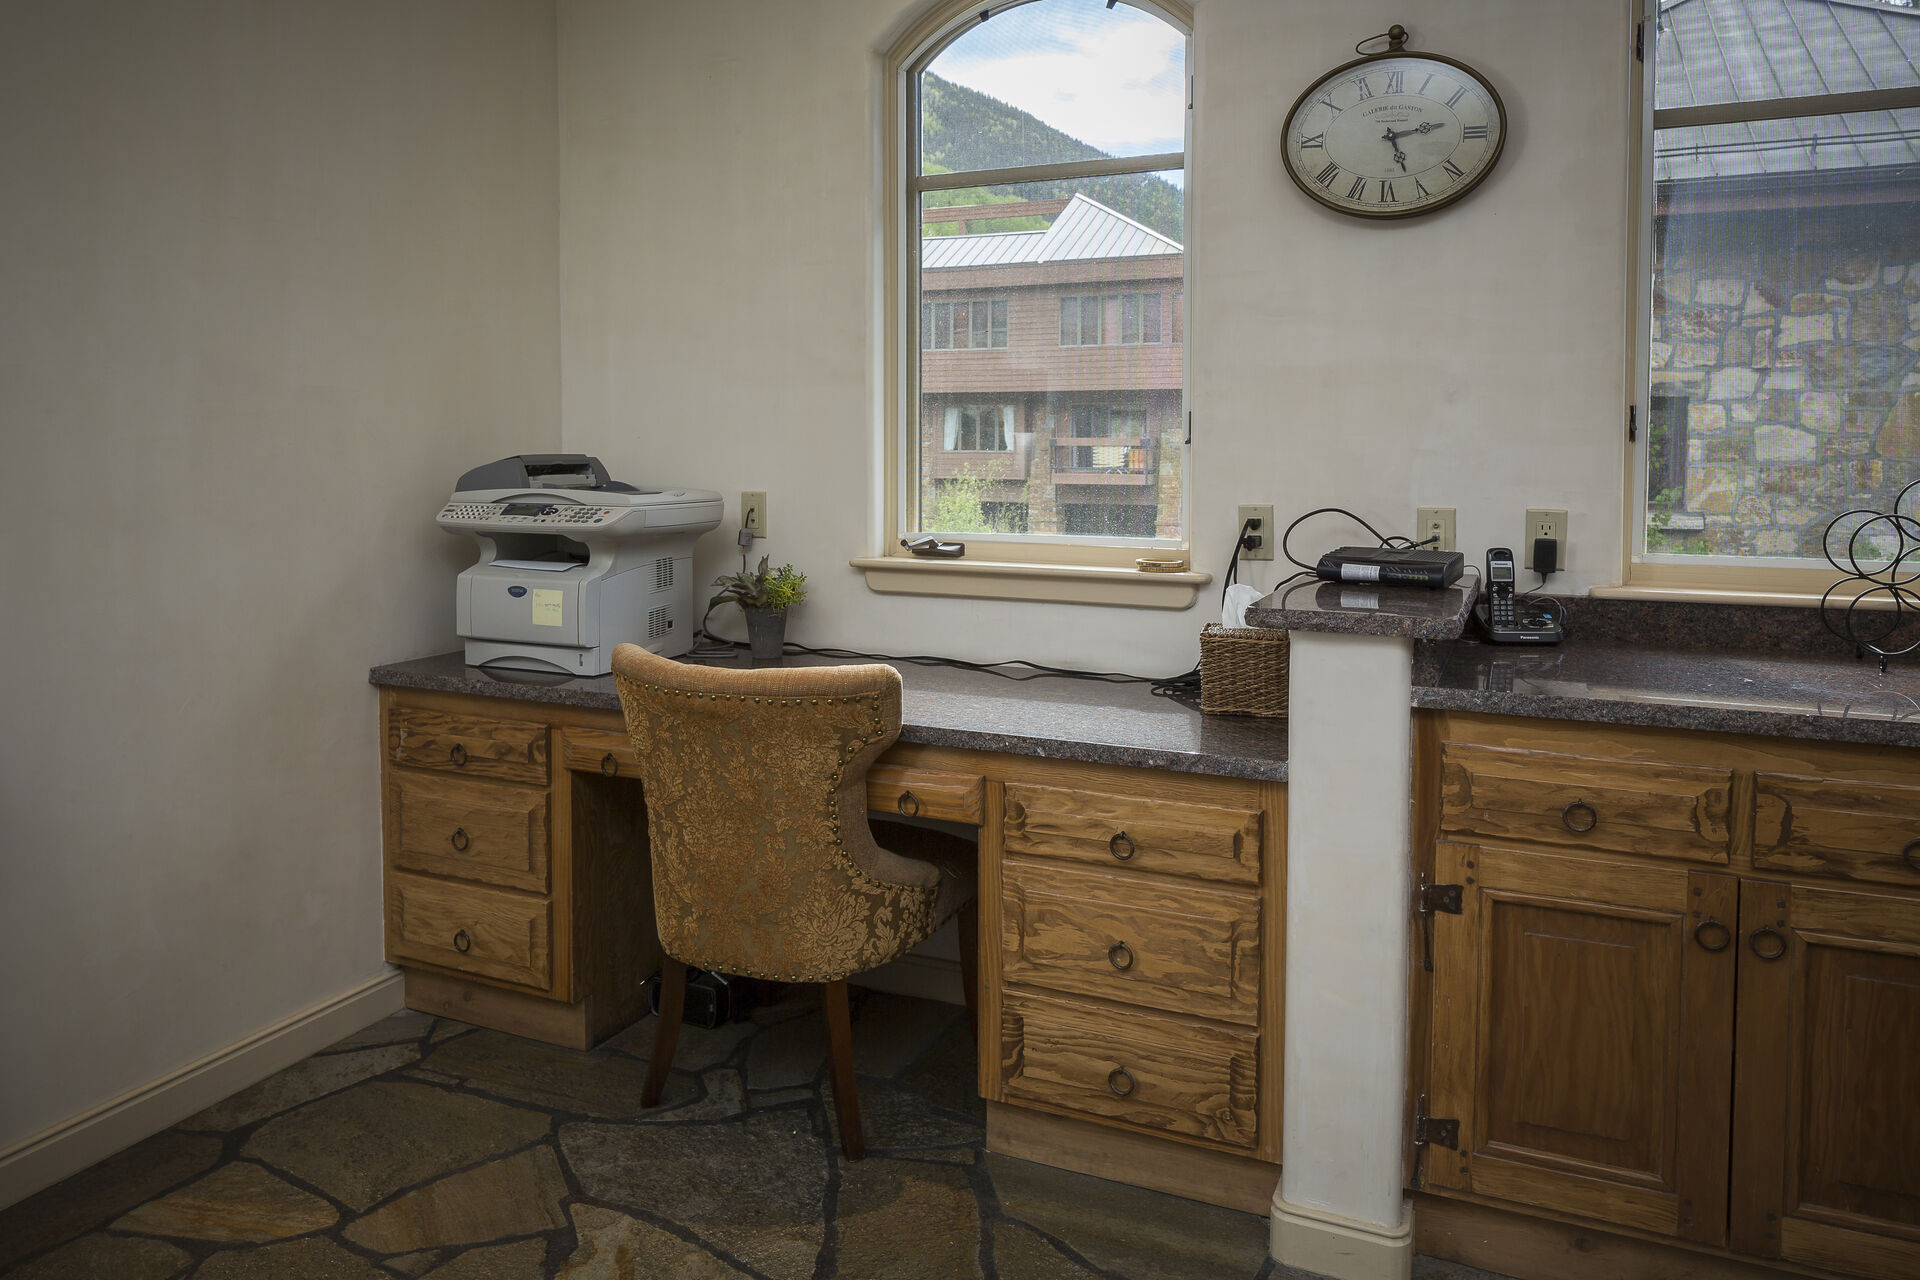 The office area of this rental, with printer and great views.